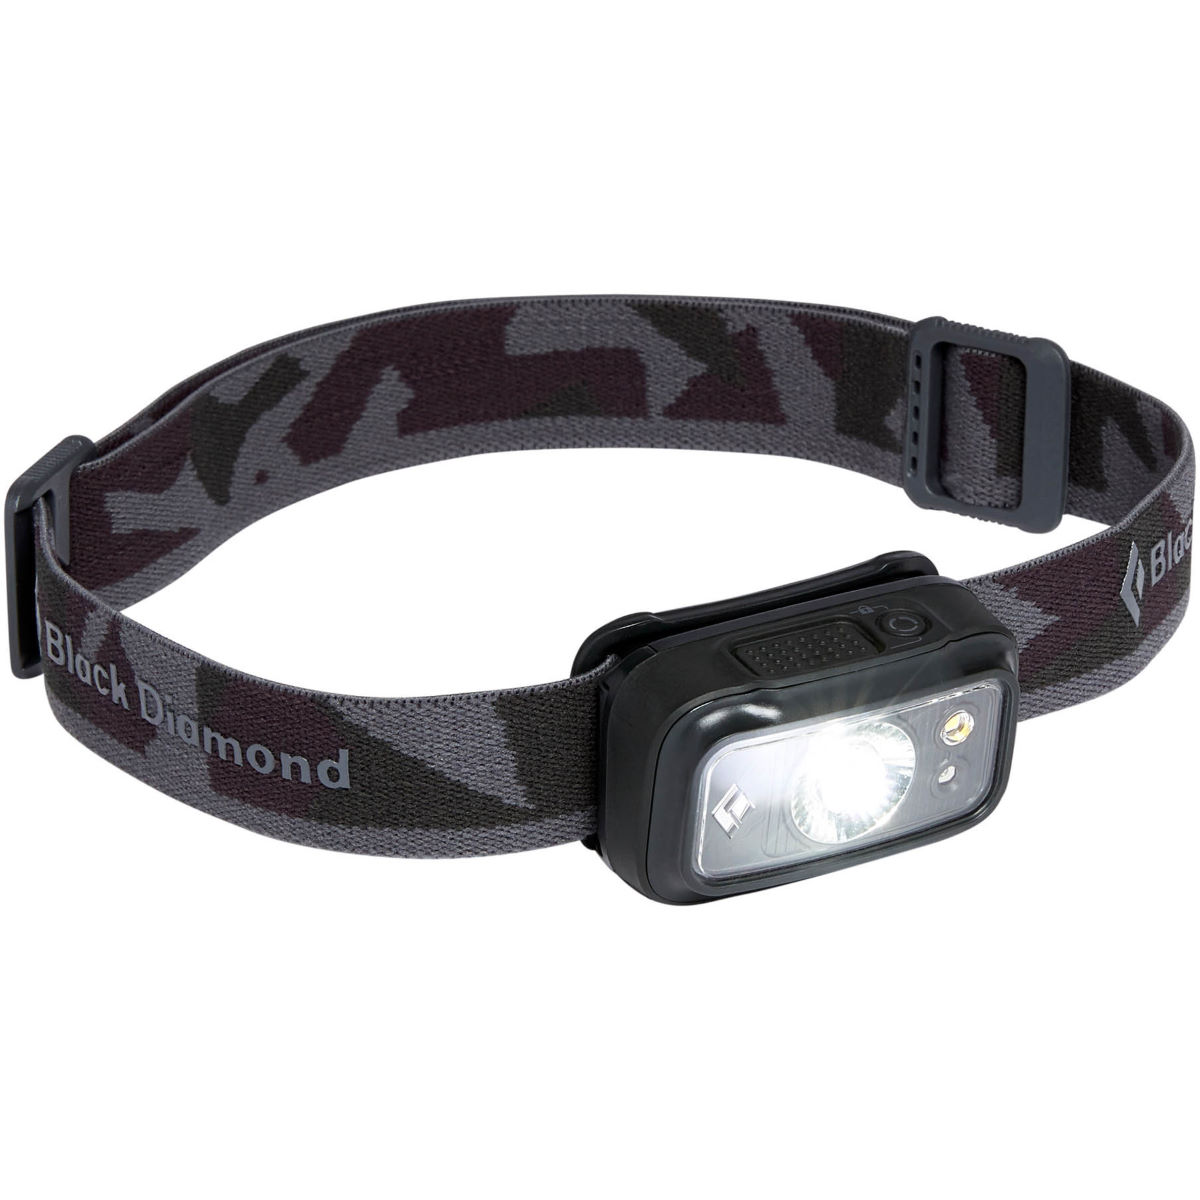 Black Diamond Black Diamond Cosmo 250 Headlamp   Front Lights